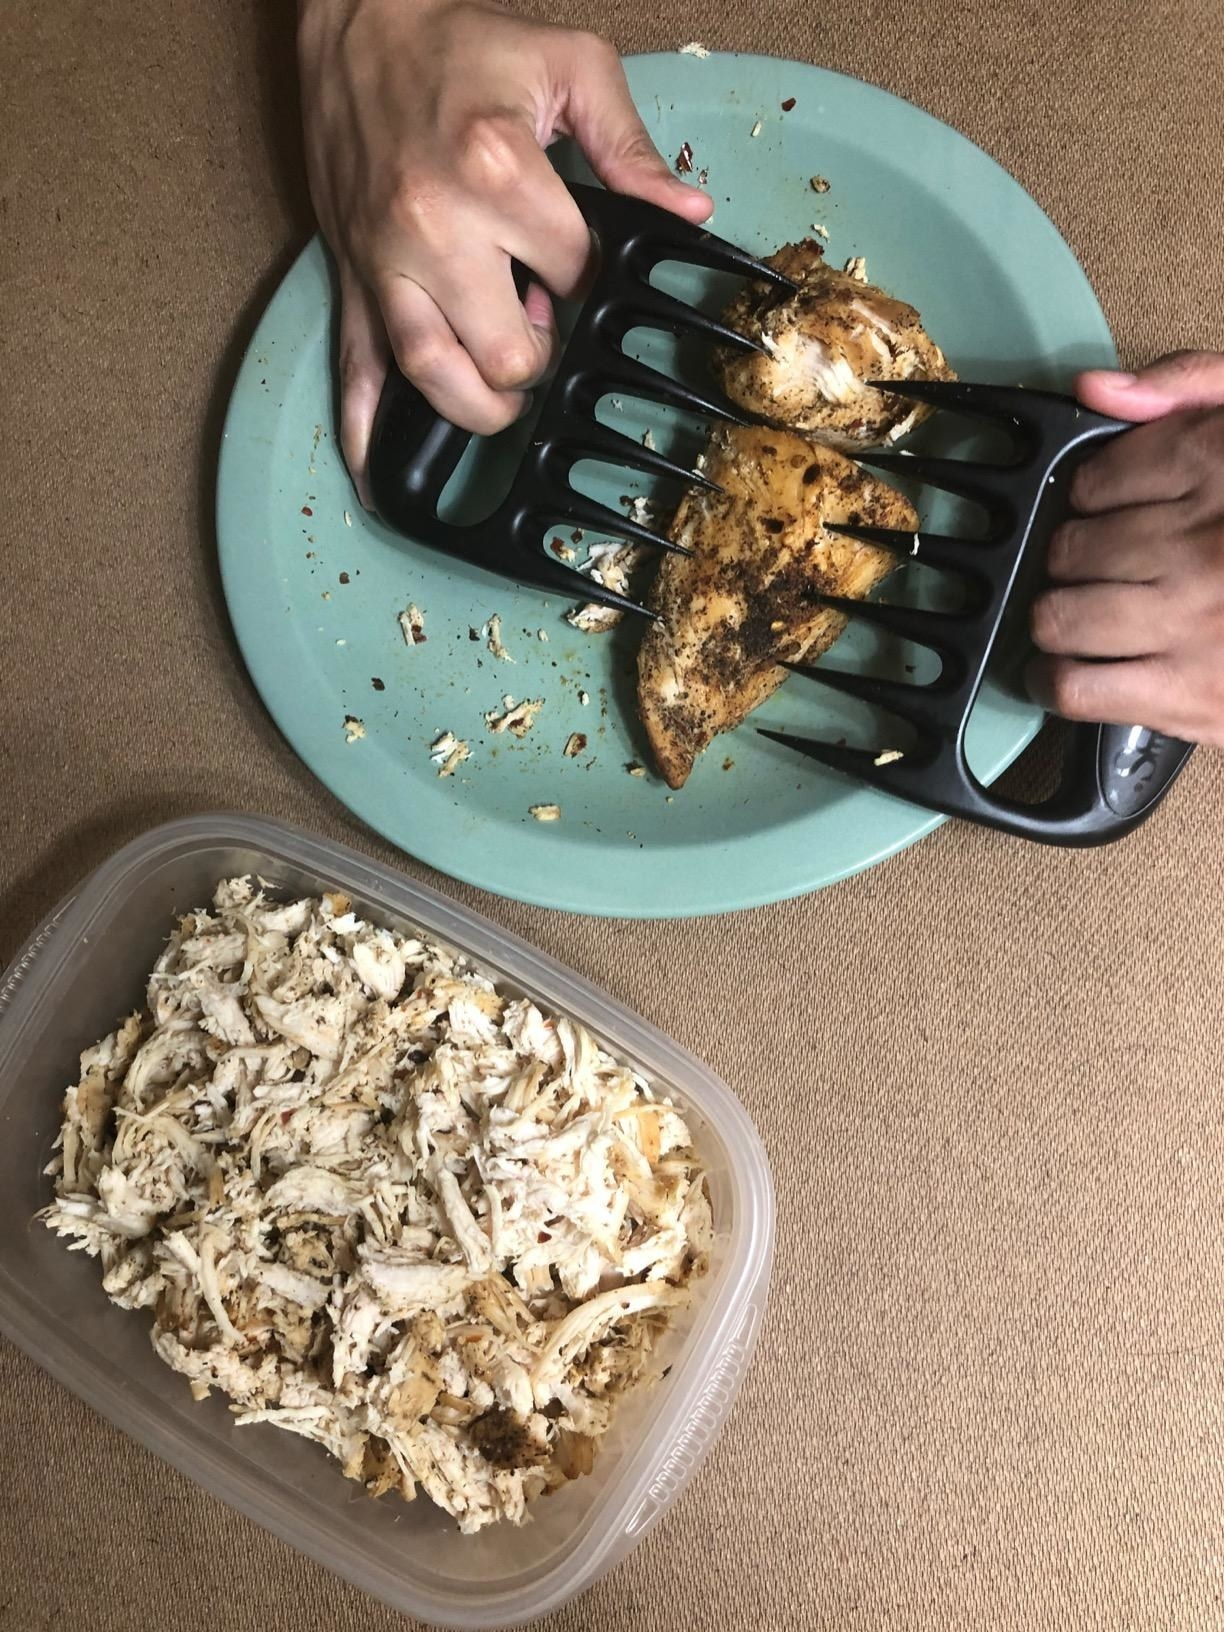 A reviewer's hands using the claws the shred some chicken